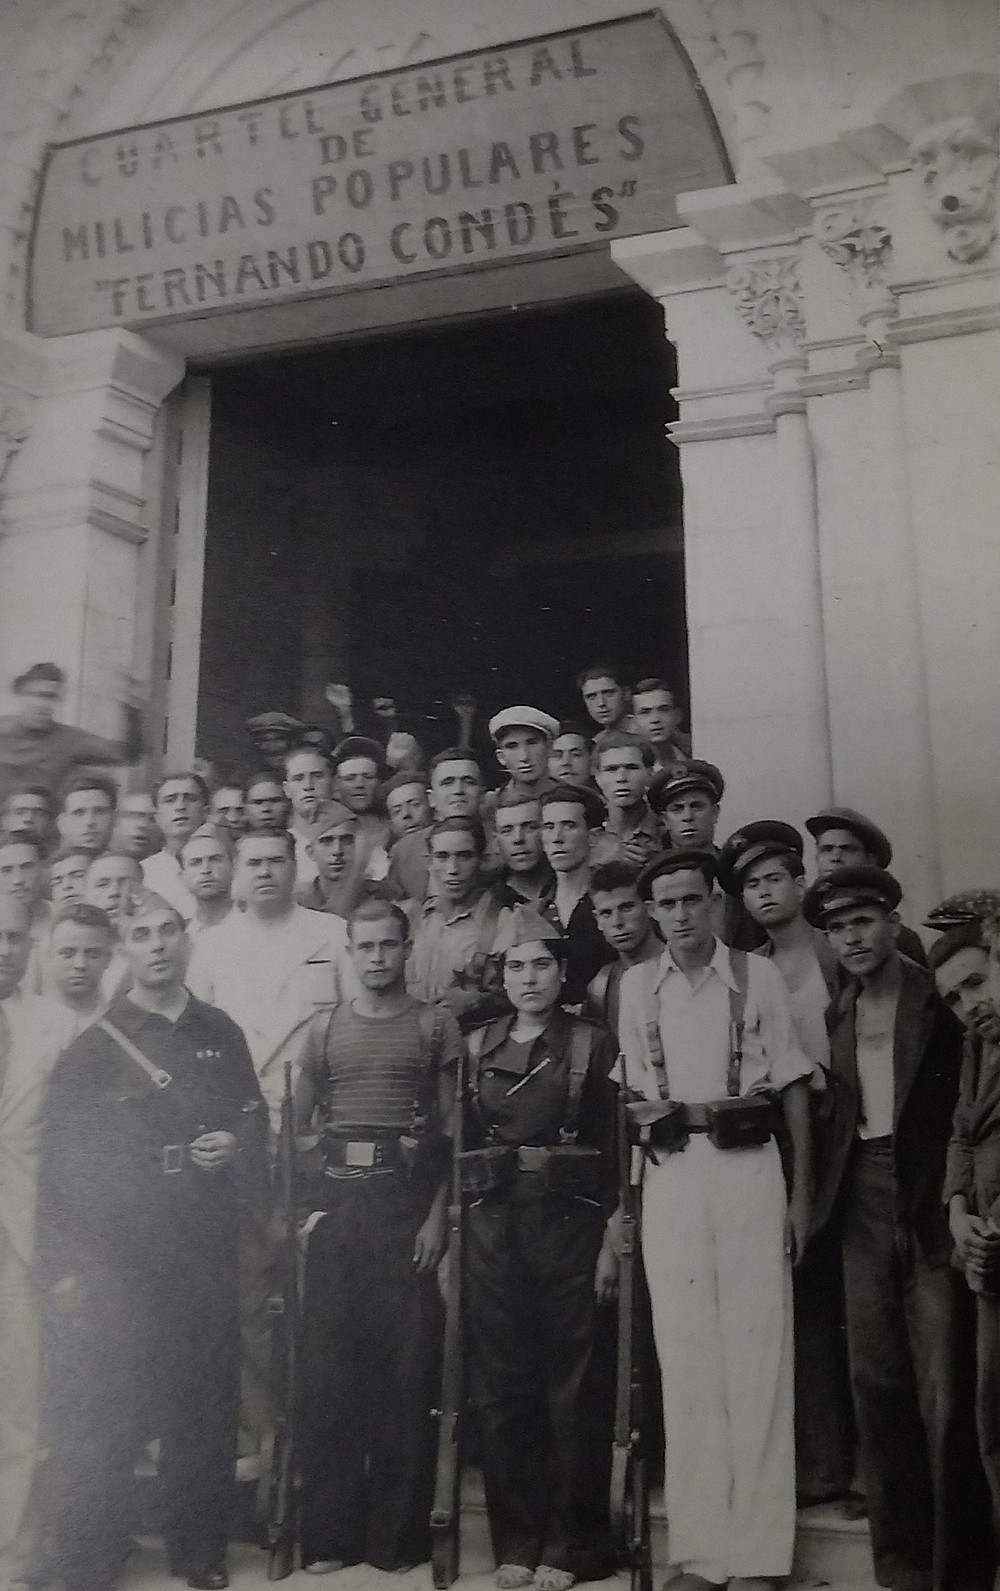 Enlisting in the Spanish Civil War - including a female volunteer (front)